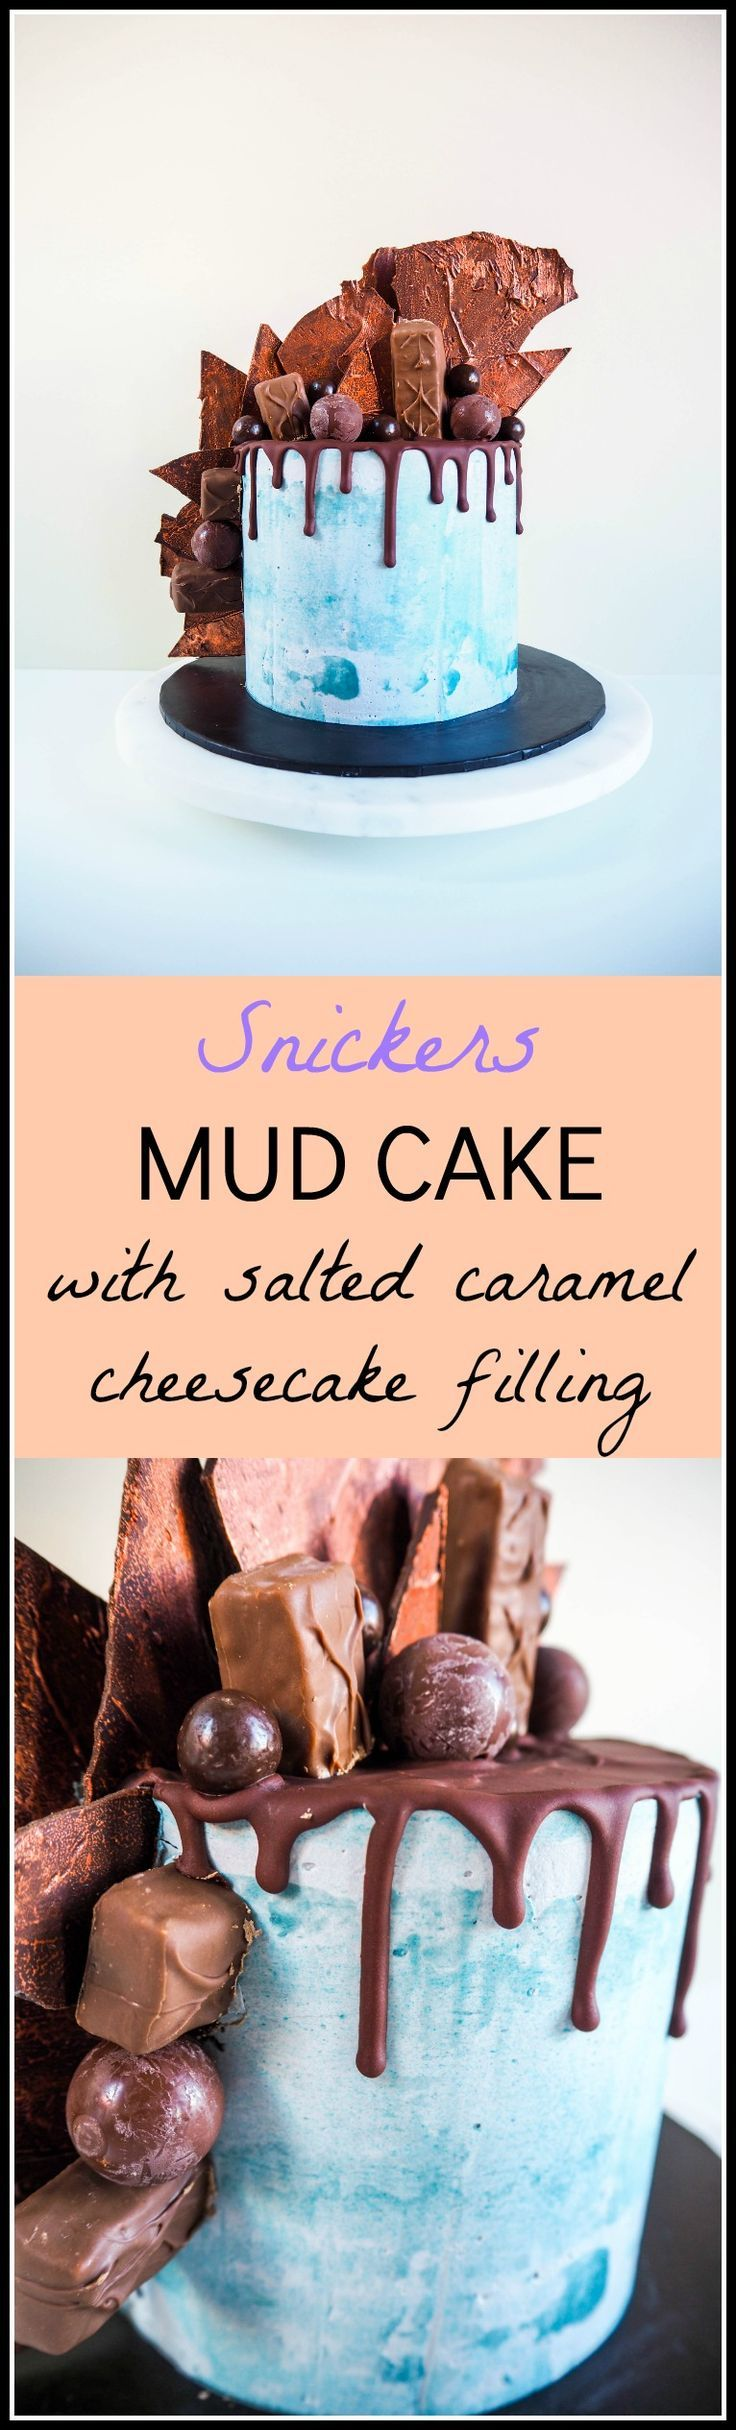 Snickers Mud Cake with Salted Caramel Cheesecake Filling